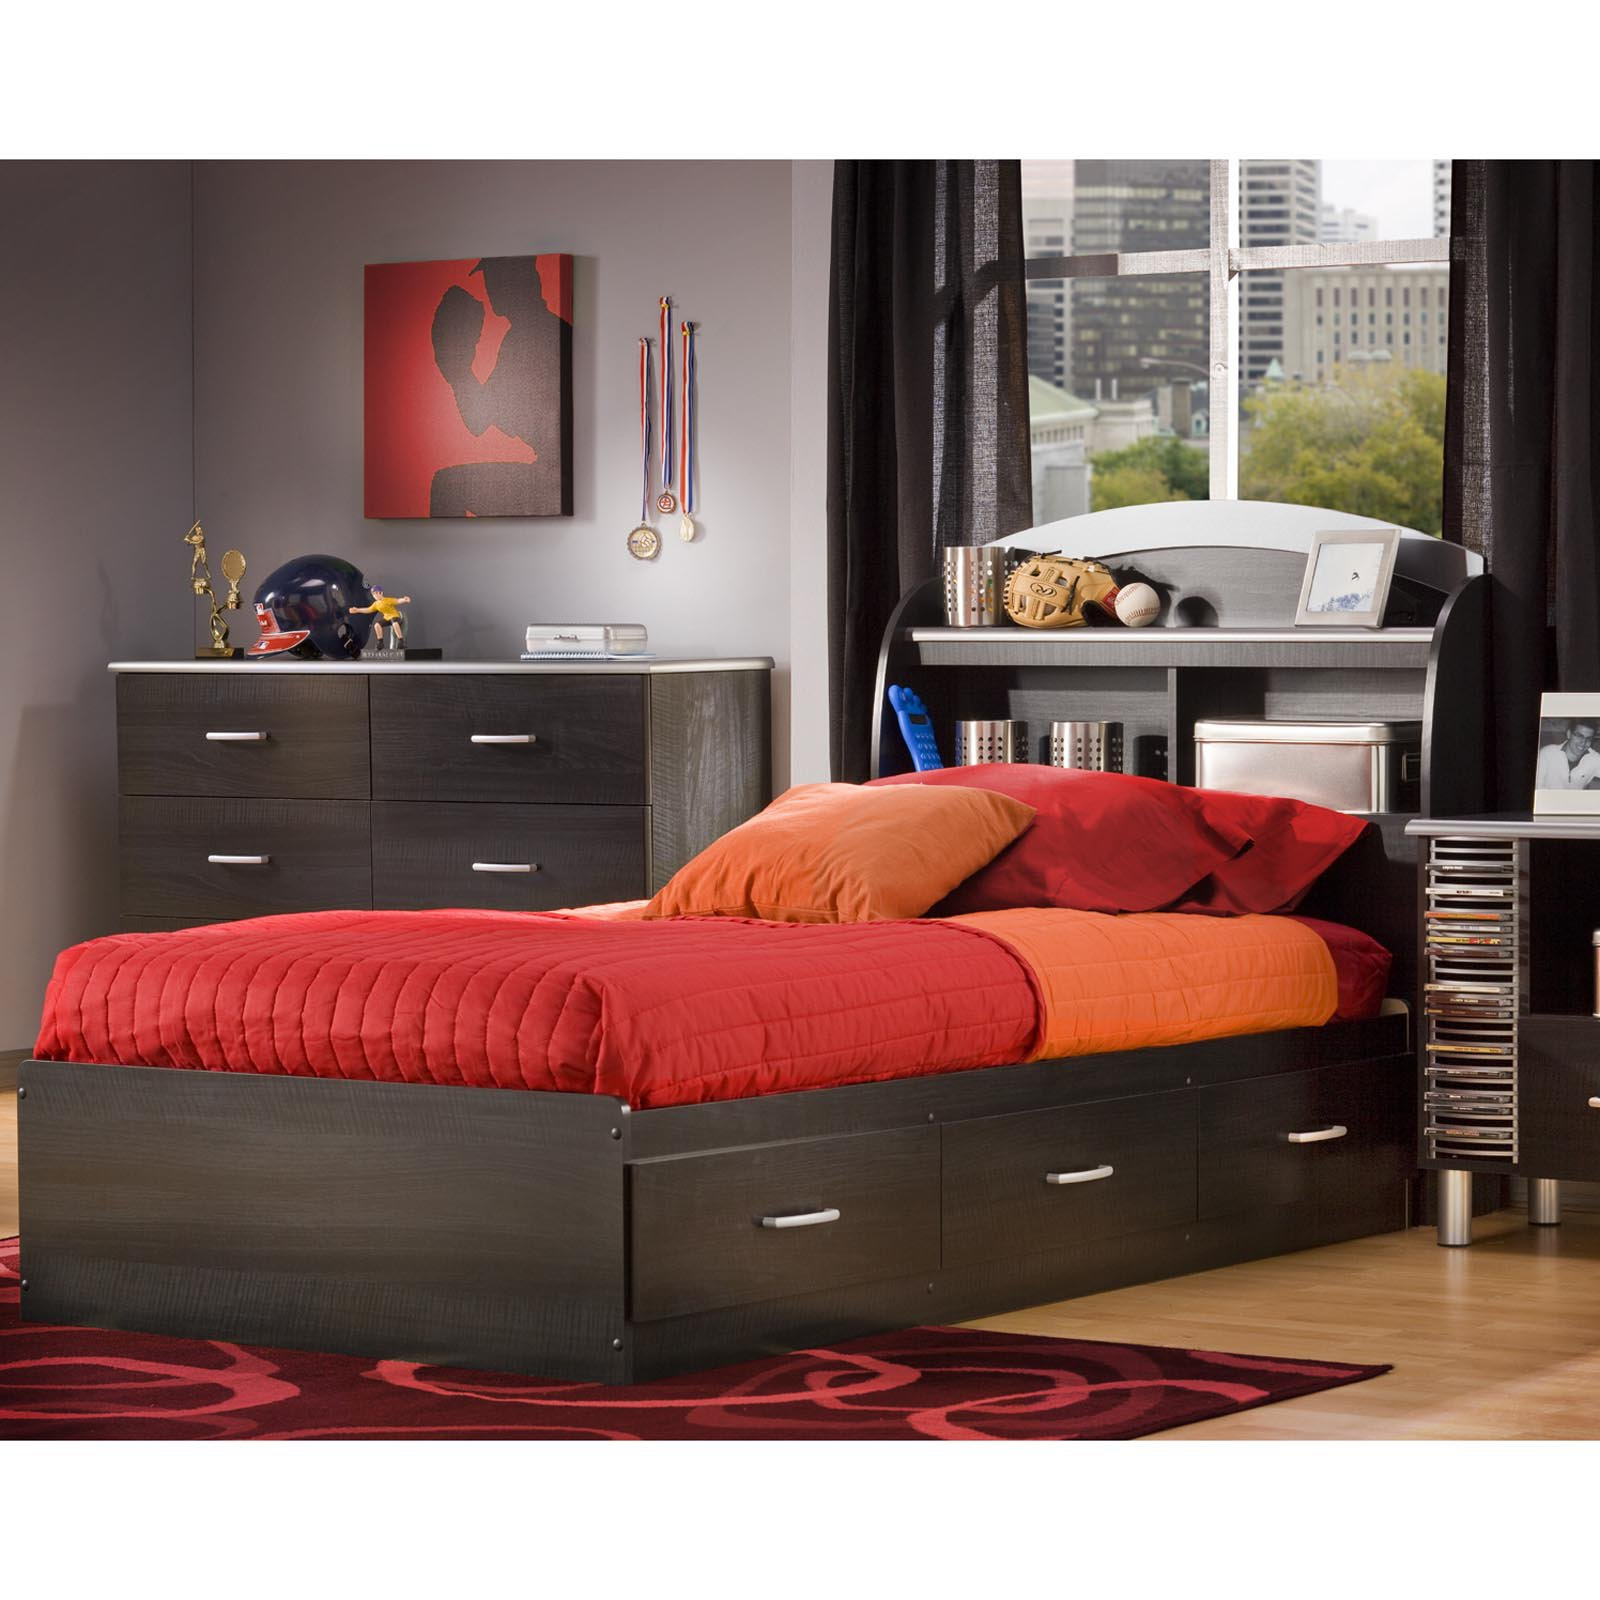 South Shore Cosmo Bookcase Platform Bed Collection